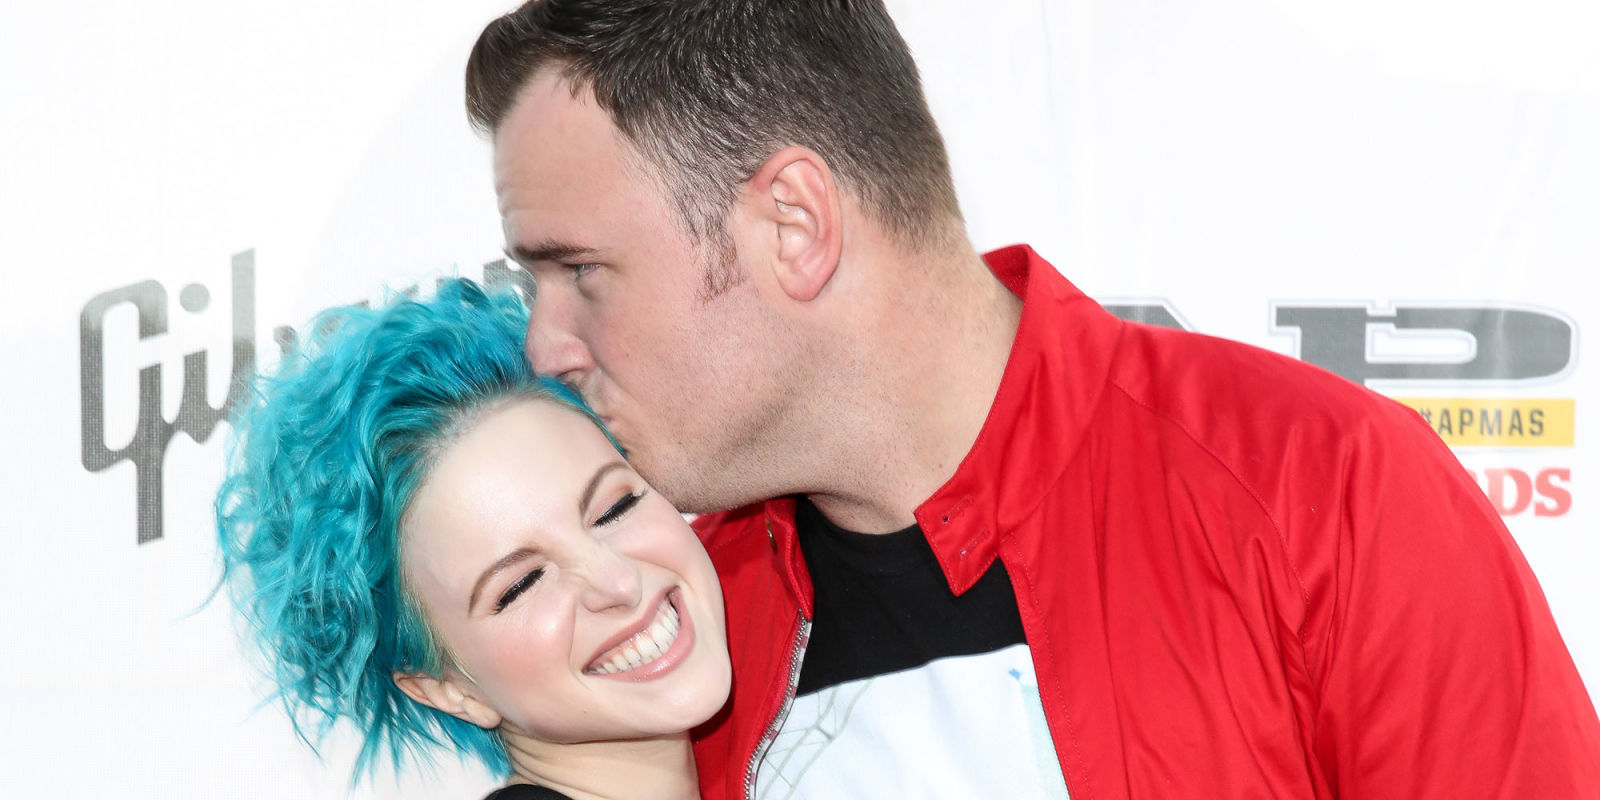 Paramore's Hayley Williams announces split from husband